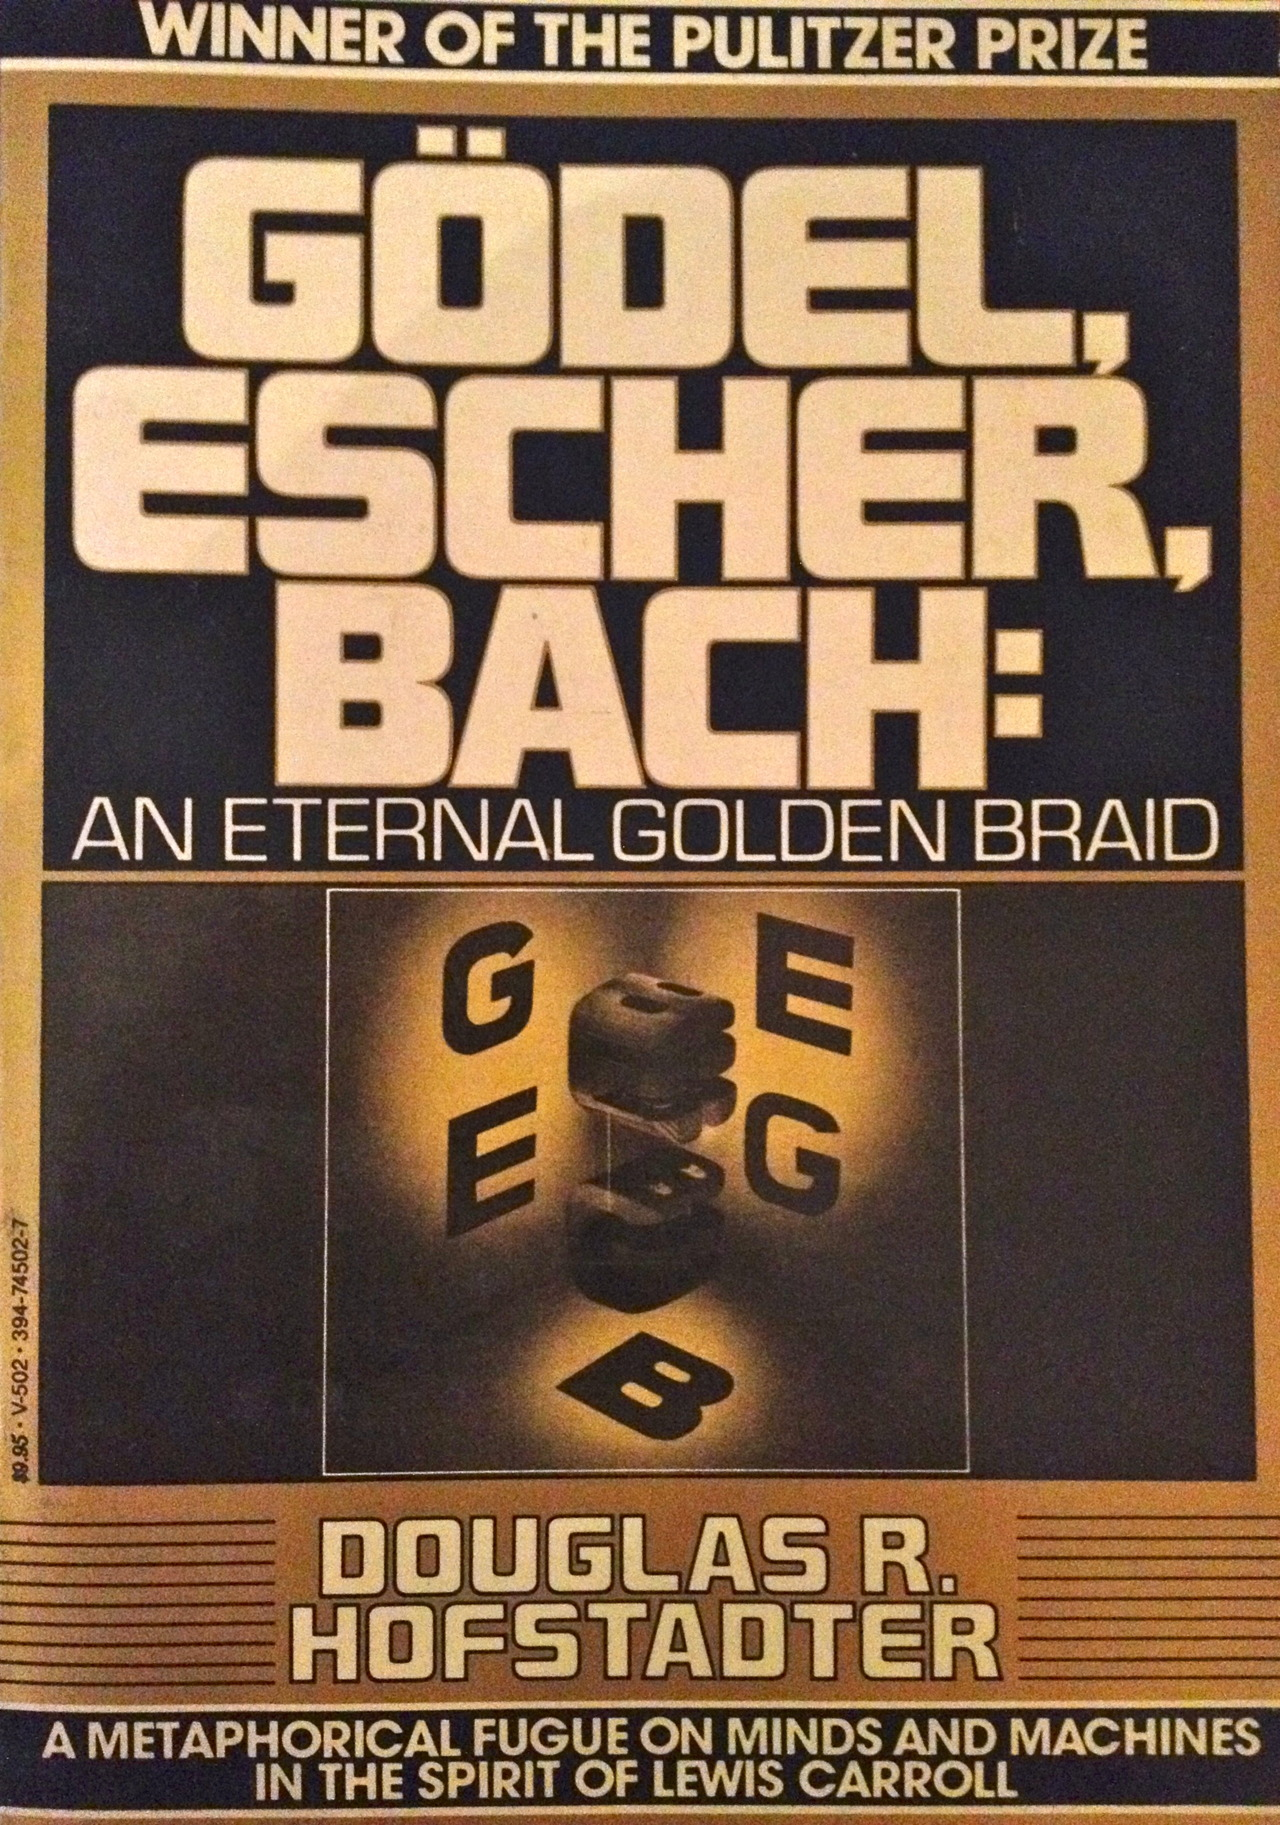 I lived with a bunch of engineering students my freshman and sophomore years. At some point, everybody got a copy of this and was reading it. It's an interesting melange of math, music and art. If you like word puzzles, and recursions and illusions, Zen koans and a dose of philosophy, it entertains. My friends all became programmers and physicists, and I went into journalism, a practical art. We all took something different away from this, I suspect  — in my case, a lasting interest in  koans and Zen Buddhism . My wife picked this up the other day because one of her students is reading it, but after seeing the formulas and technical material, she put it back on the shelf. It can be tough reading, but it rewards you by stretching the brain.